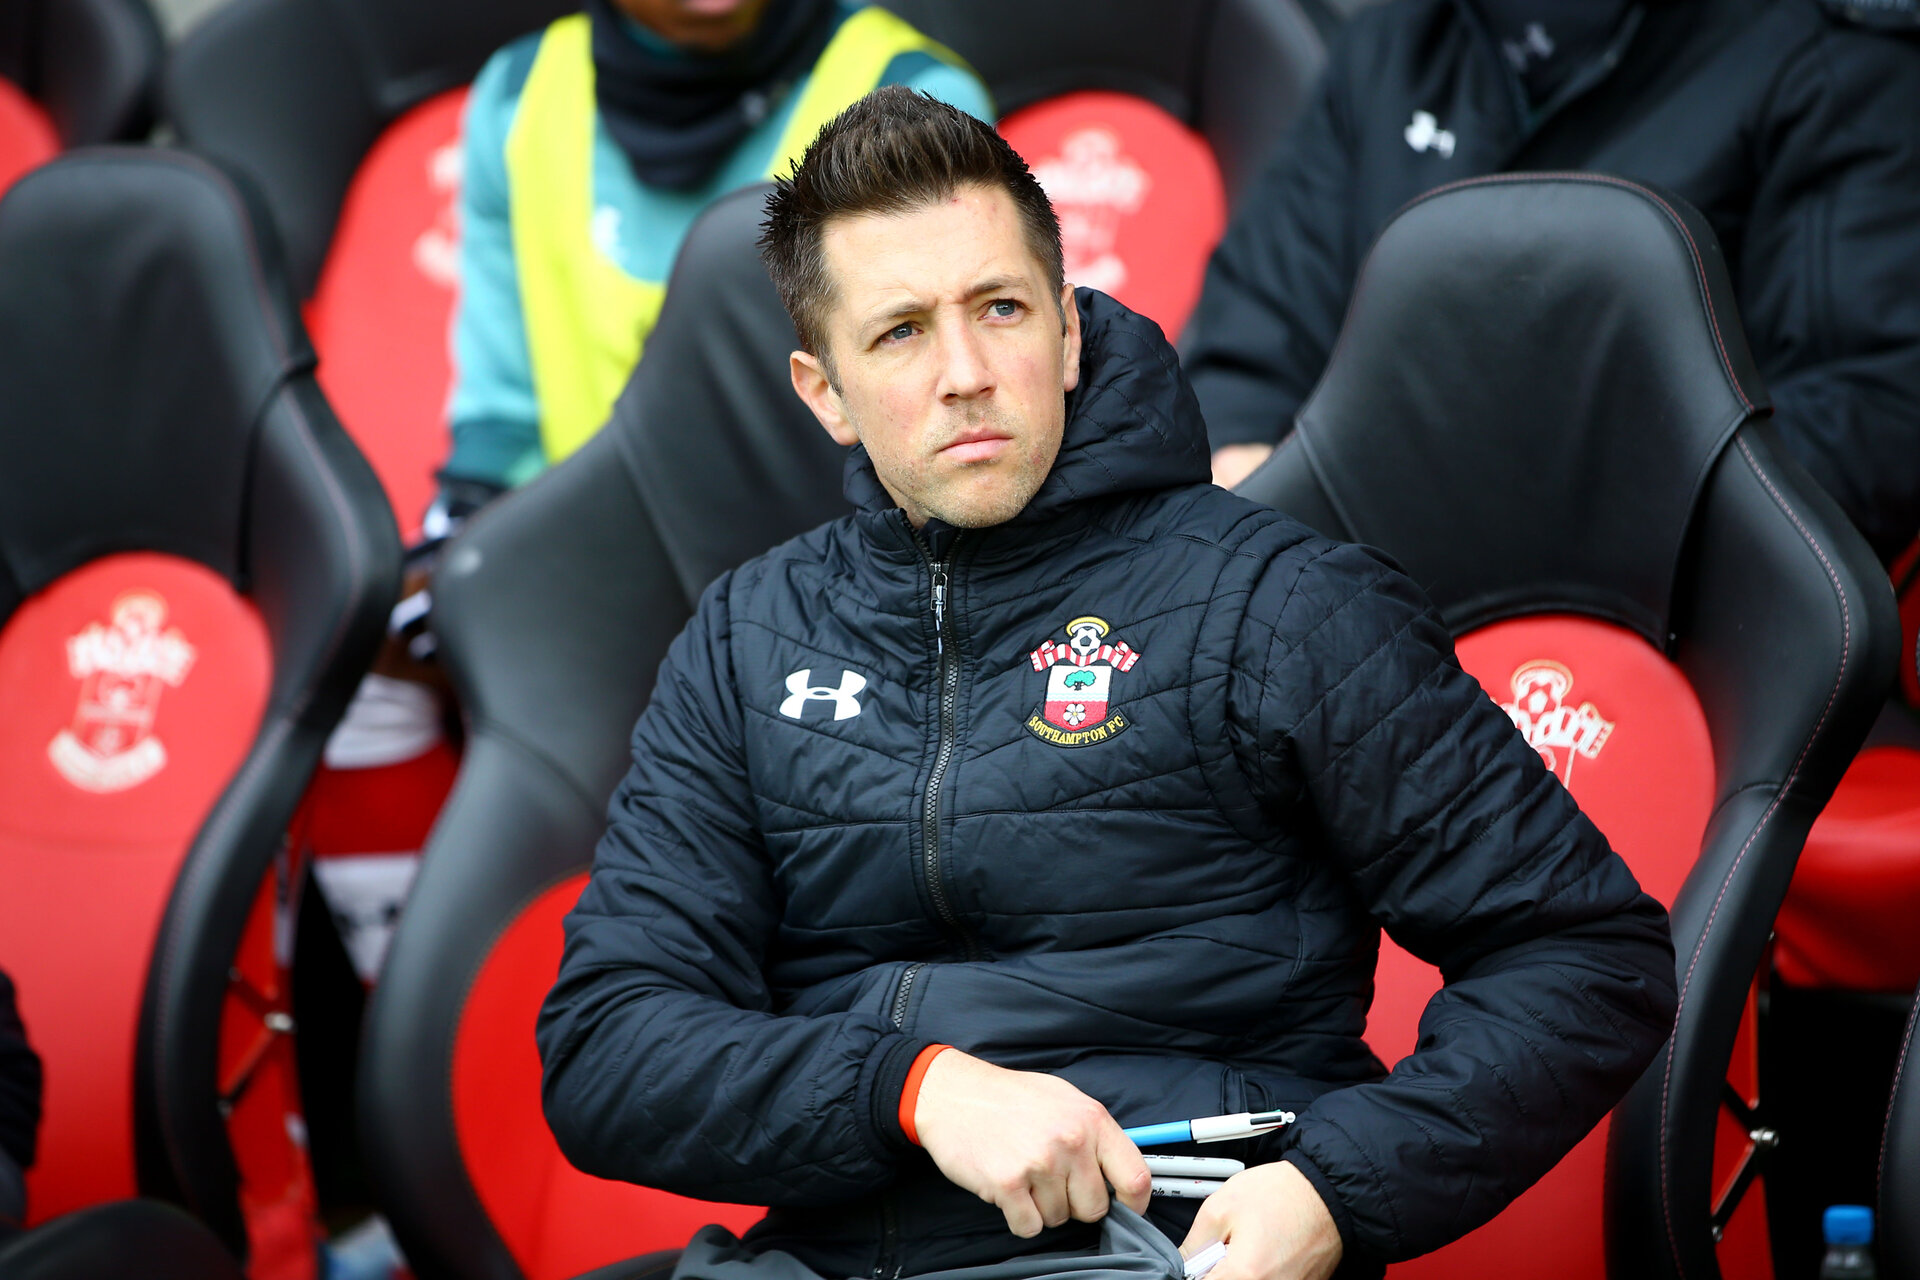 SOUTHAMPTON, ENGLAND - MARCH 07: Andrew Sparkes during the Premier League match between Southampton FC and Newcastle United at St Mary's Stadium on March 7, 2020 in Southampton, United Kingdom. (Photo by Isabelle Field/Southampton FC via Getty Images)